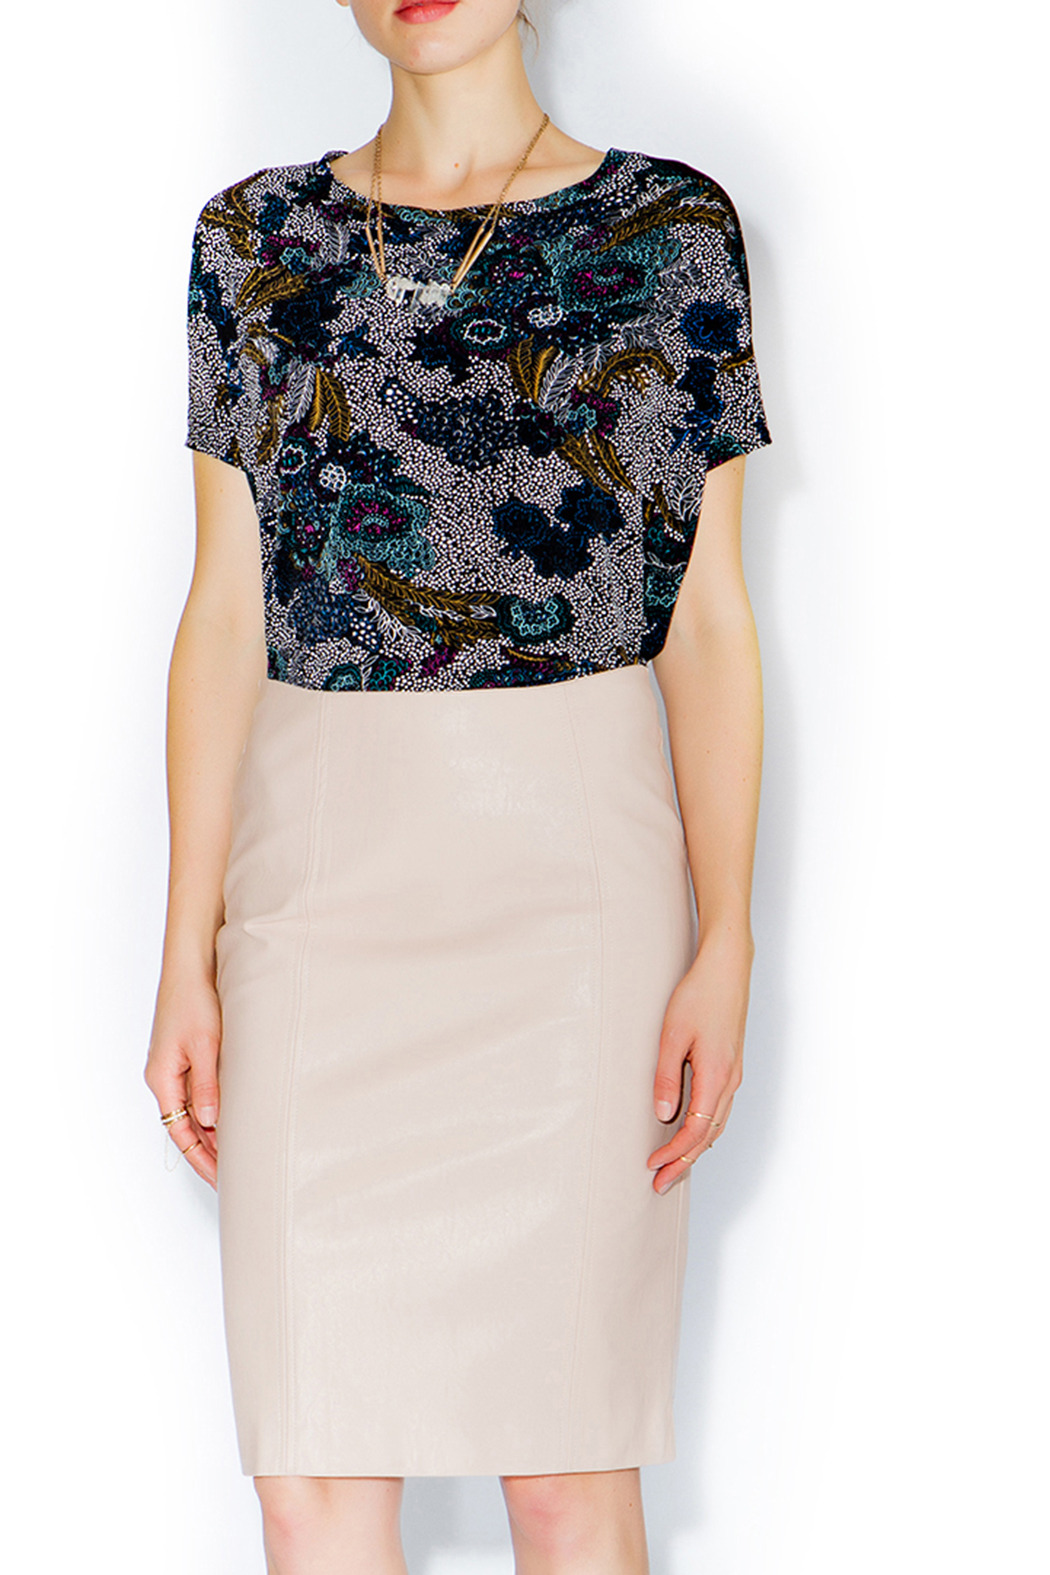 C. Luce Blush Leather Pencil Skirt - Front Full Image